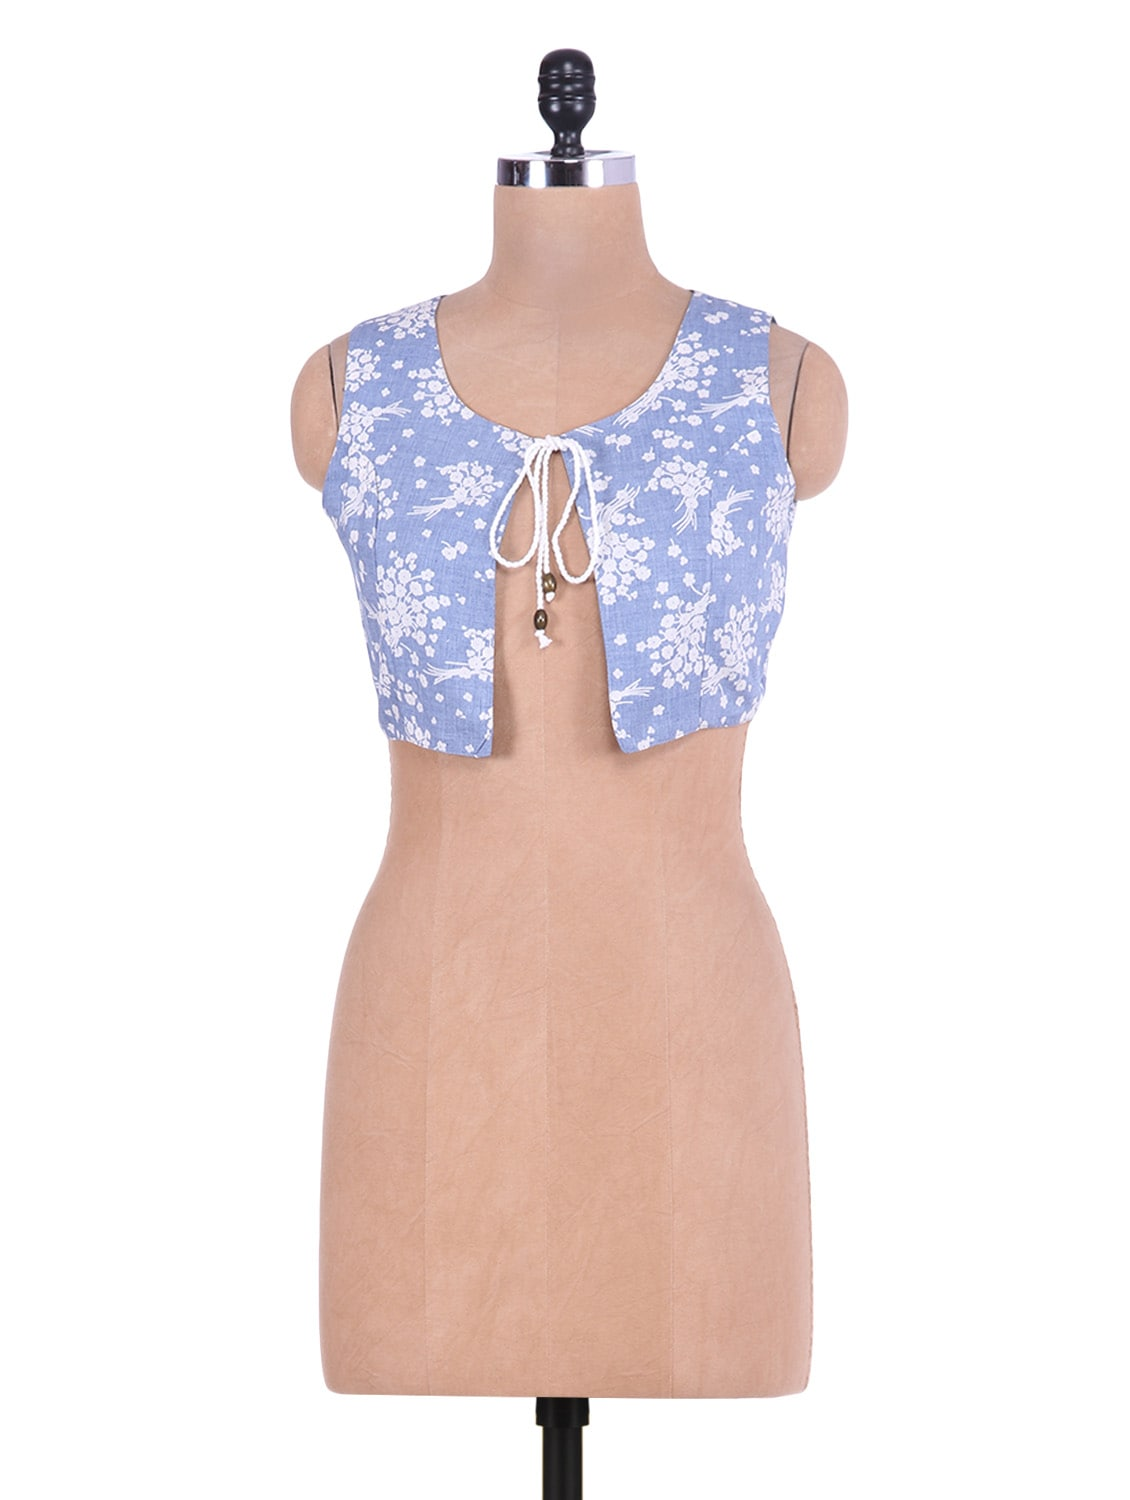 Light Blue Floral Printed Cotton Sleeveless Shrug - By